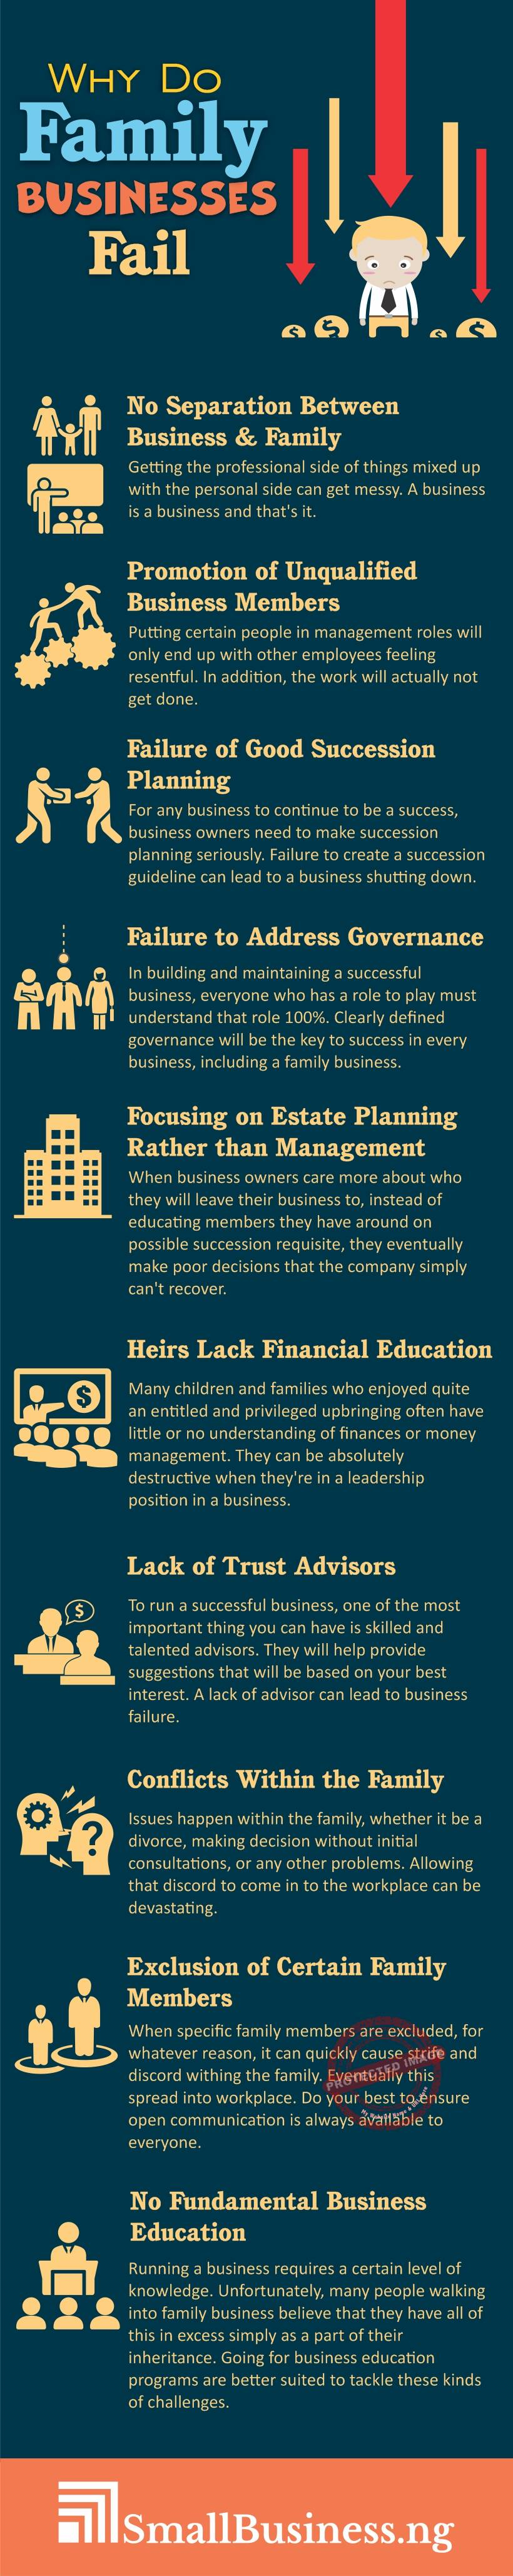 Why do family businesses fail infographic